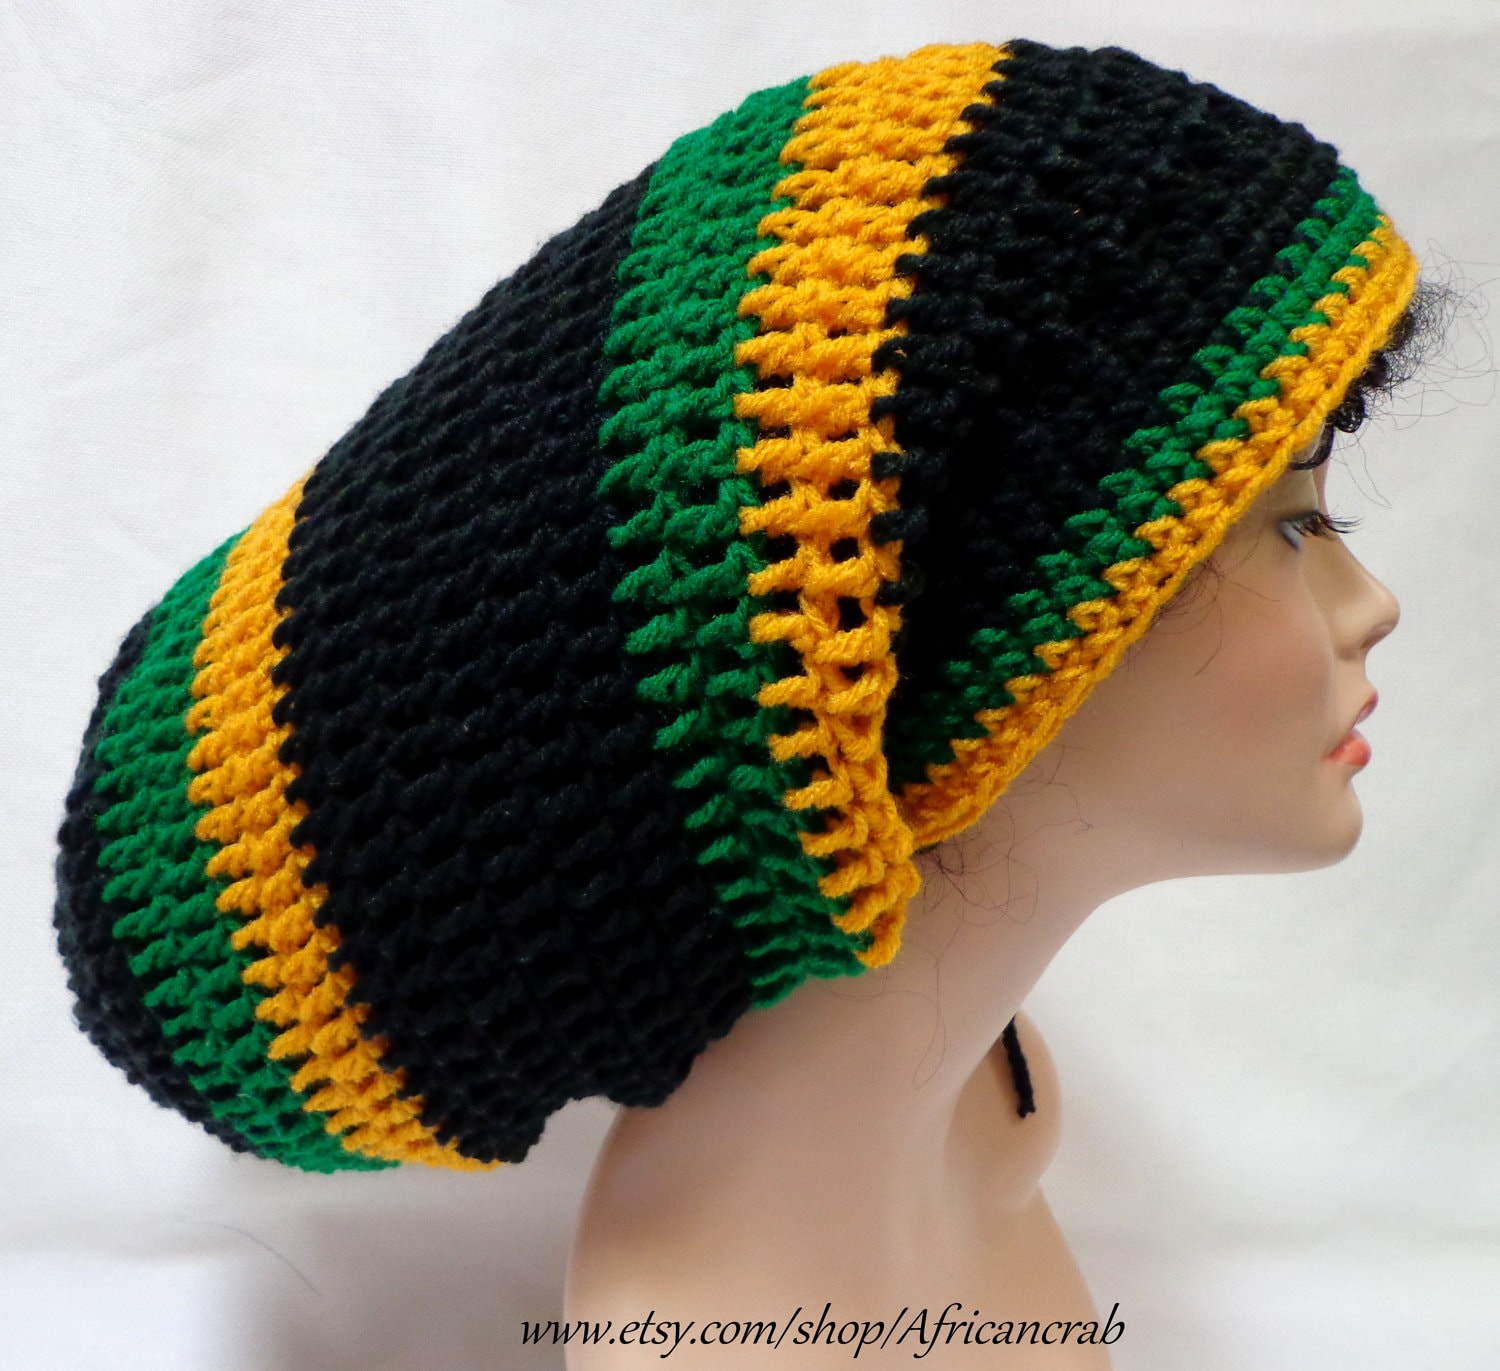 Free Crochet Pattern For Rasta Hat : Crochet Mega Rasta Tam. Jamaican Dreadlocks Tam. by ...